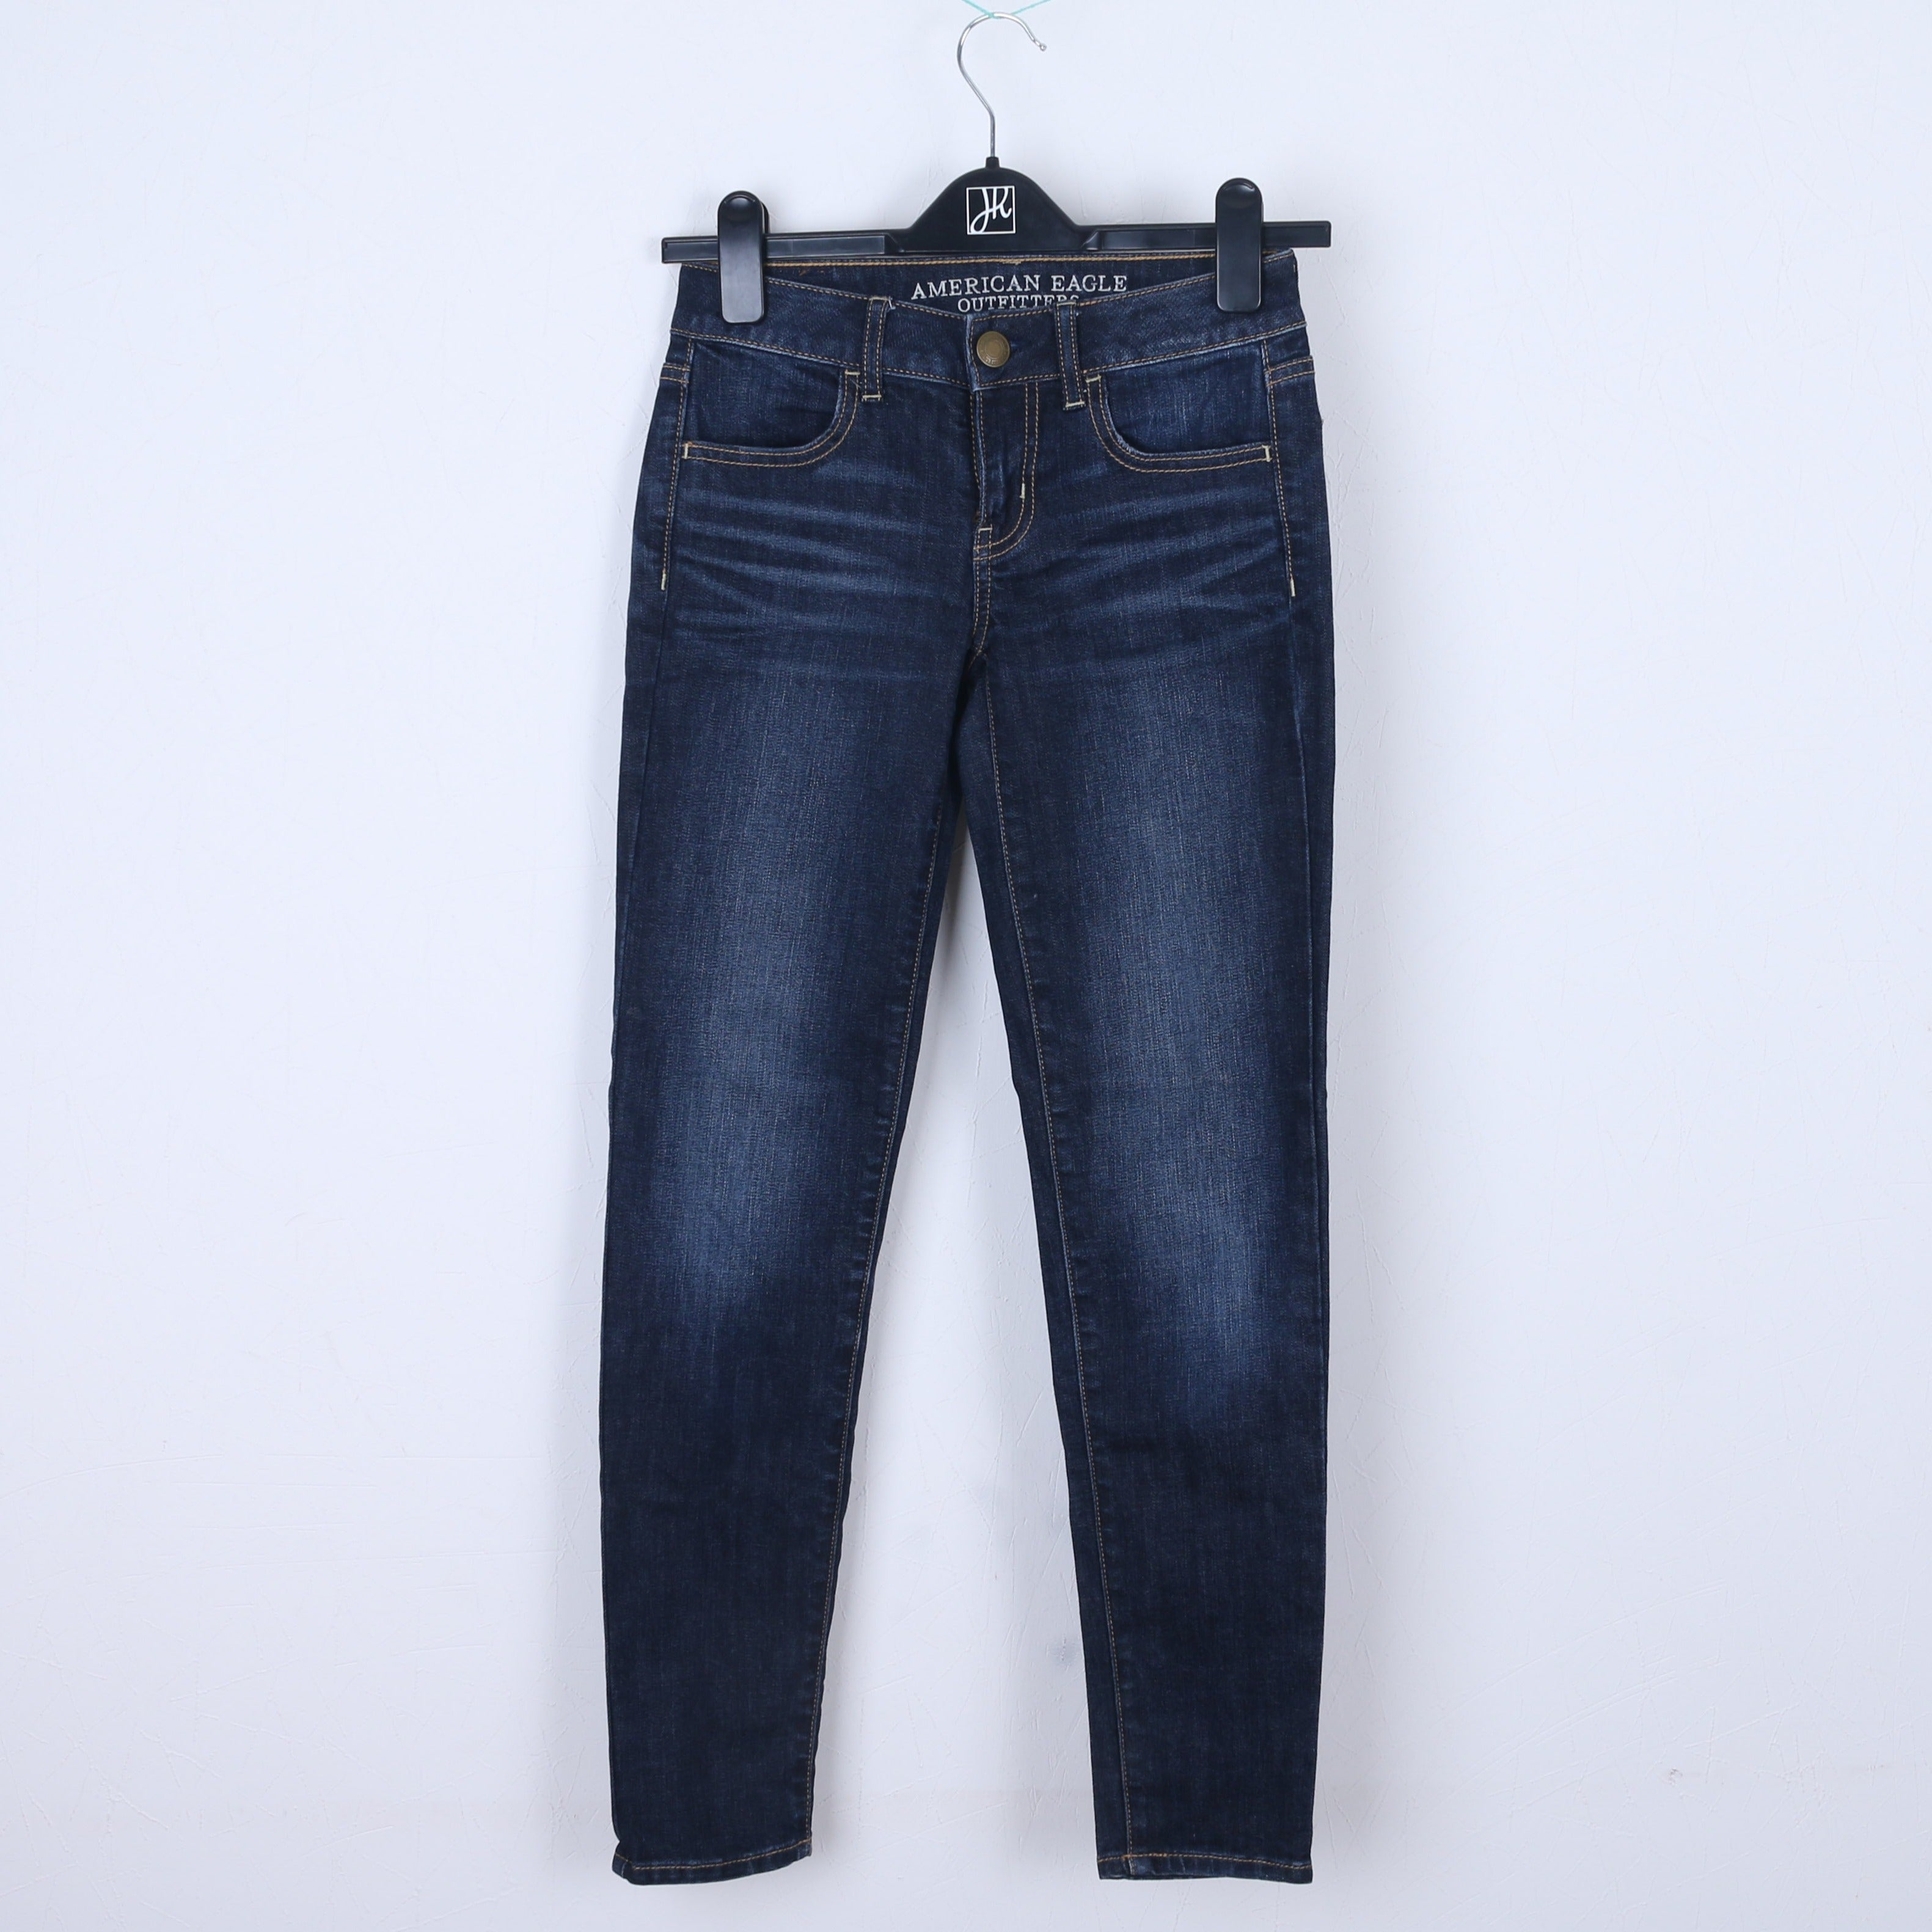 JEANS AMERICAN EAGLE